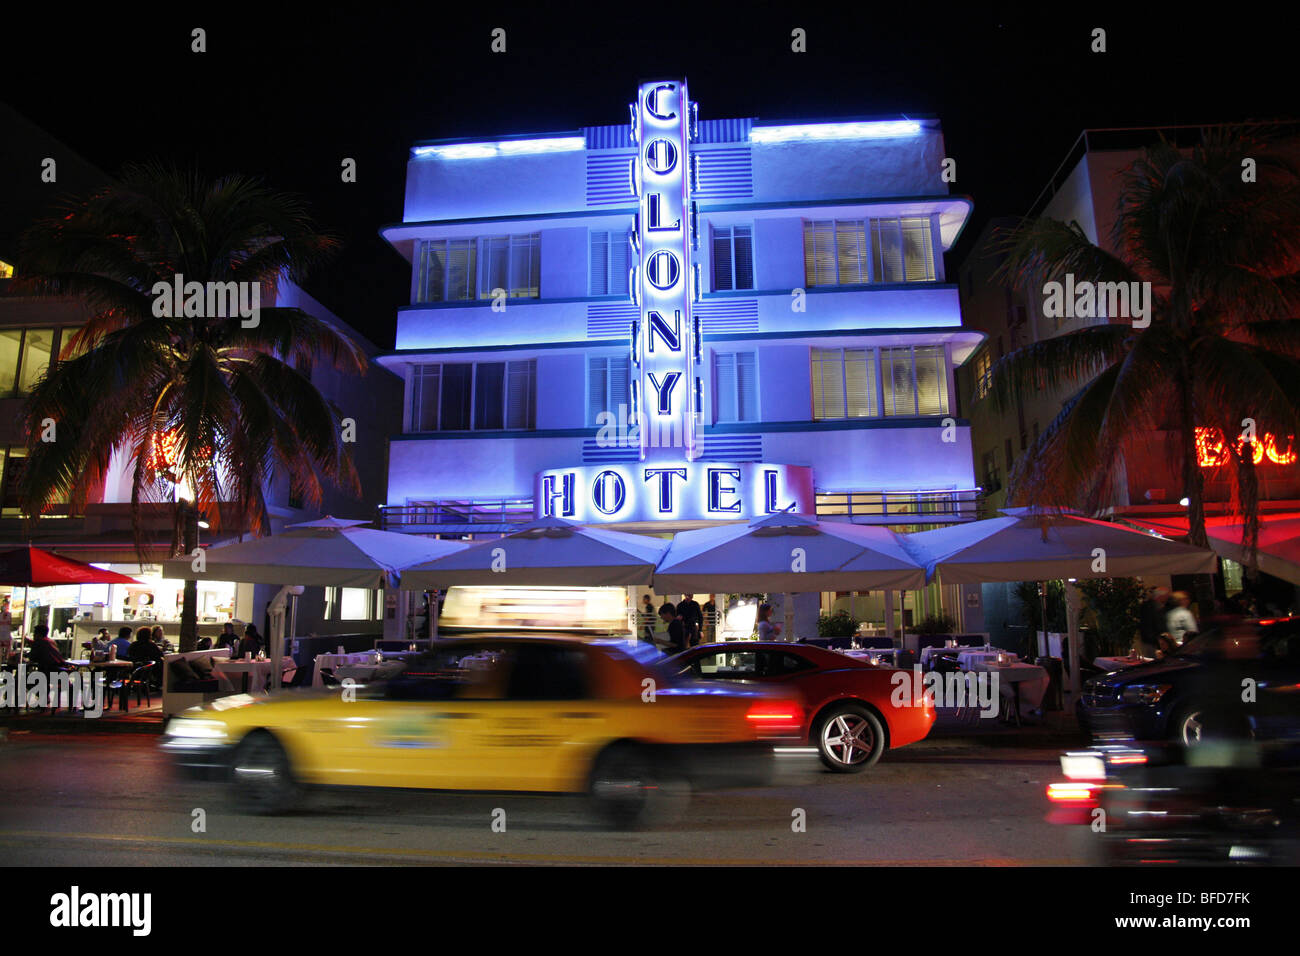 The Colony Hotel on Ocean Drive, Miami Beach, USA - Stock Image